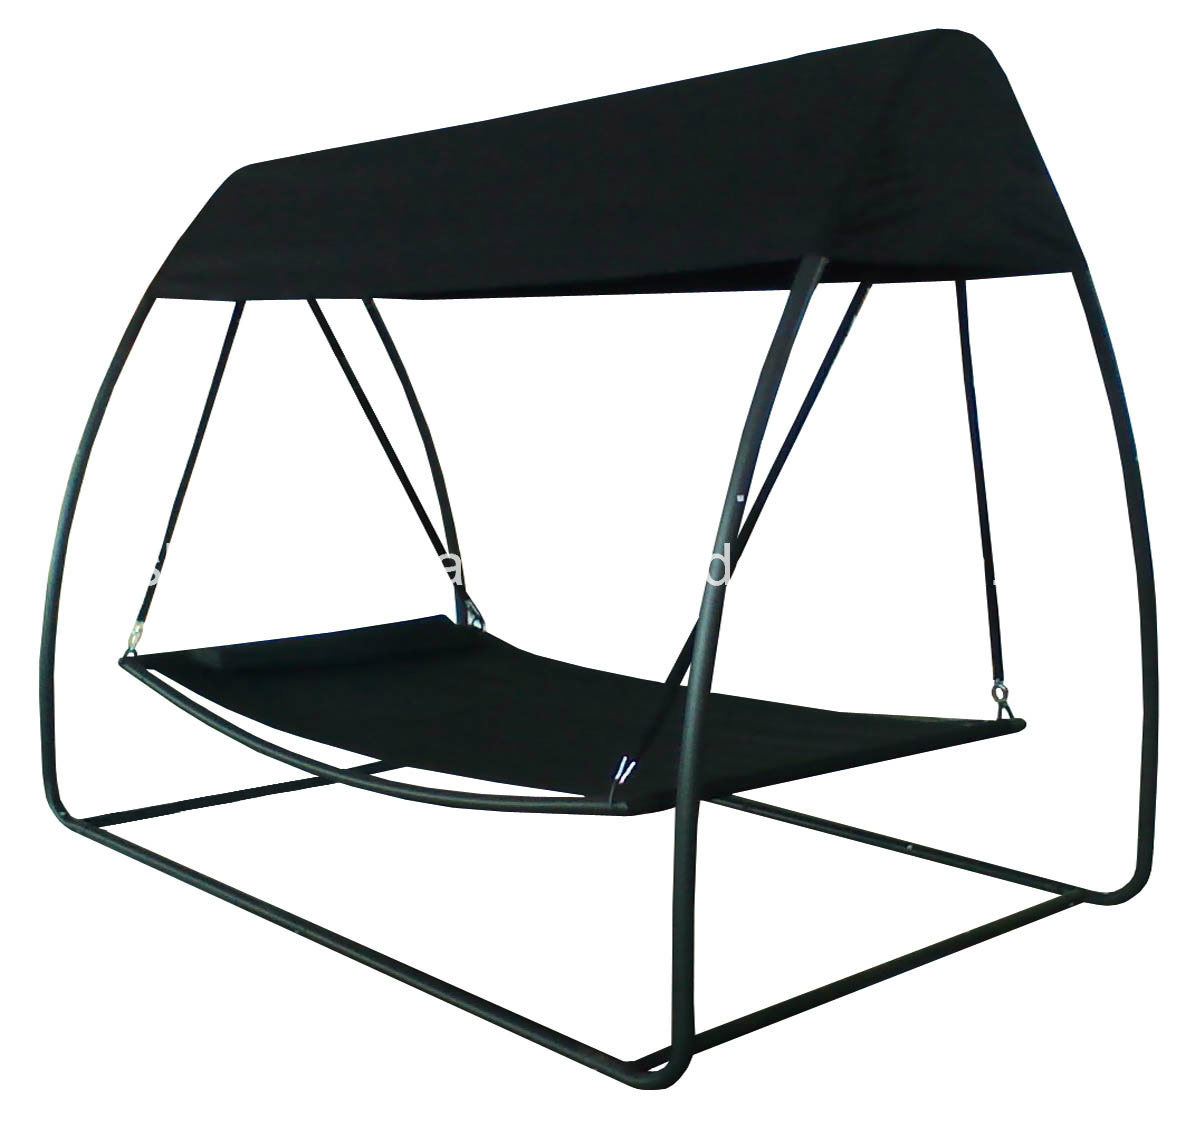 Patio Garden Swing Chair/Bed with Mosquito Net pictures & photos